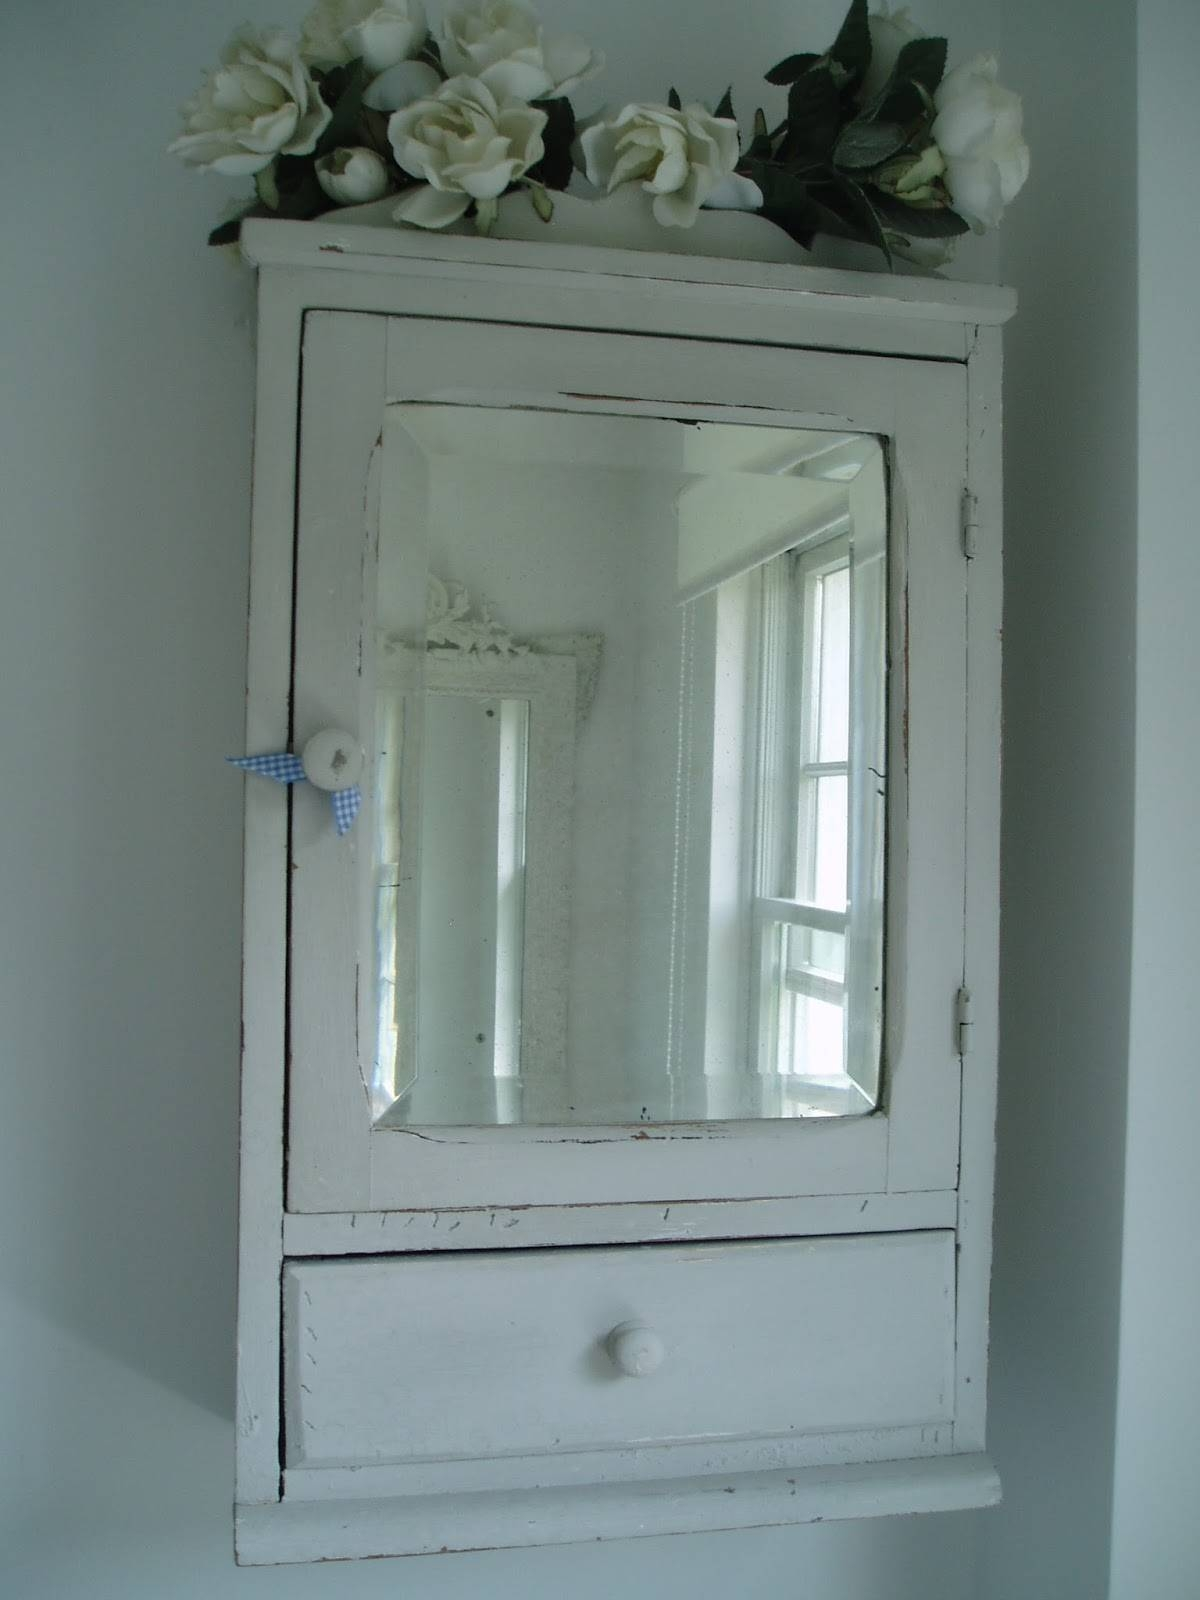 Vintage Bathroom Mirror That Ahs A Cabinet, Retro Bathroom pertaining to Vintage Style Bathroom Mirrors (Image 24 of 25)